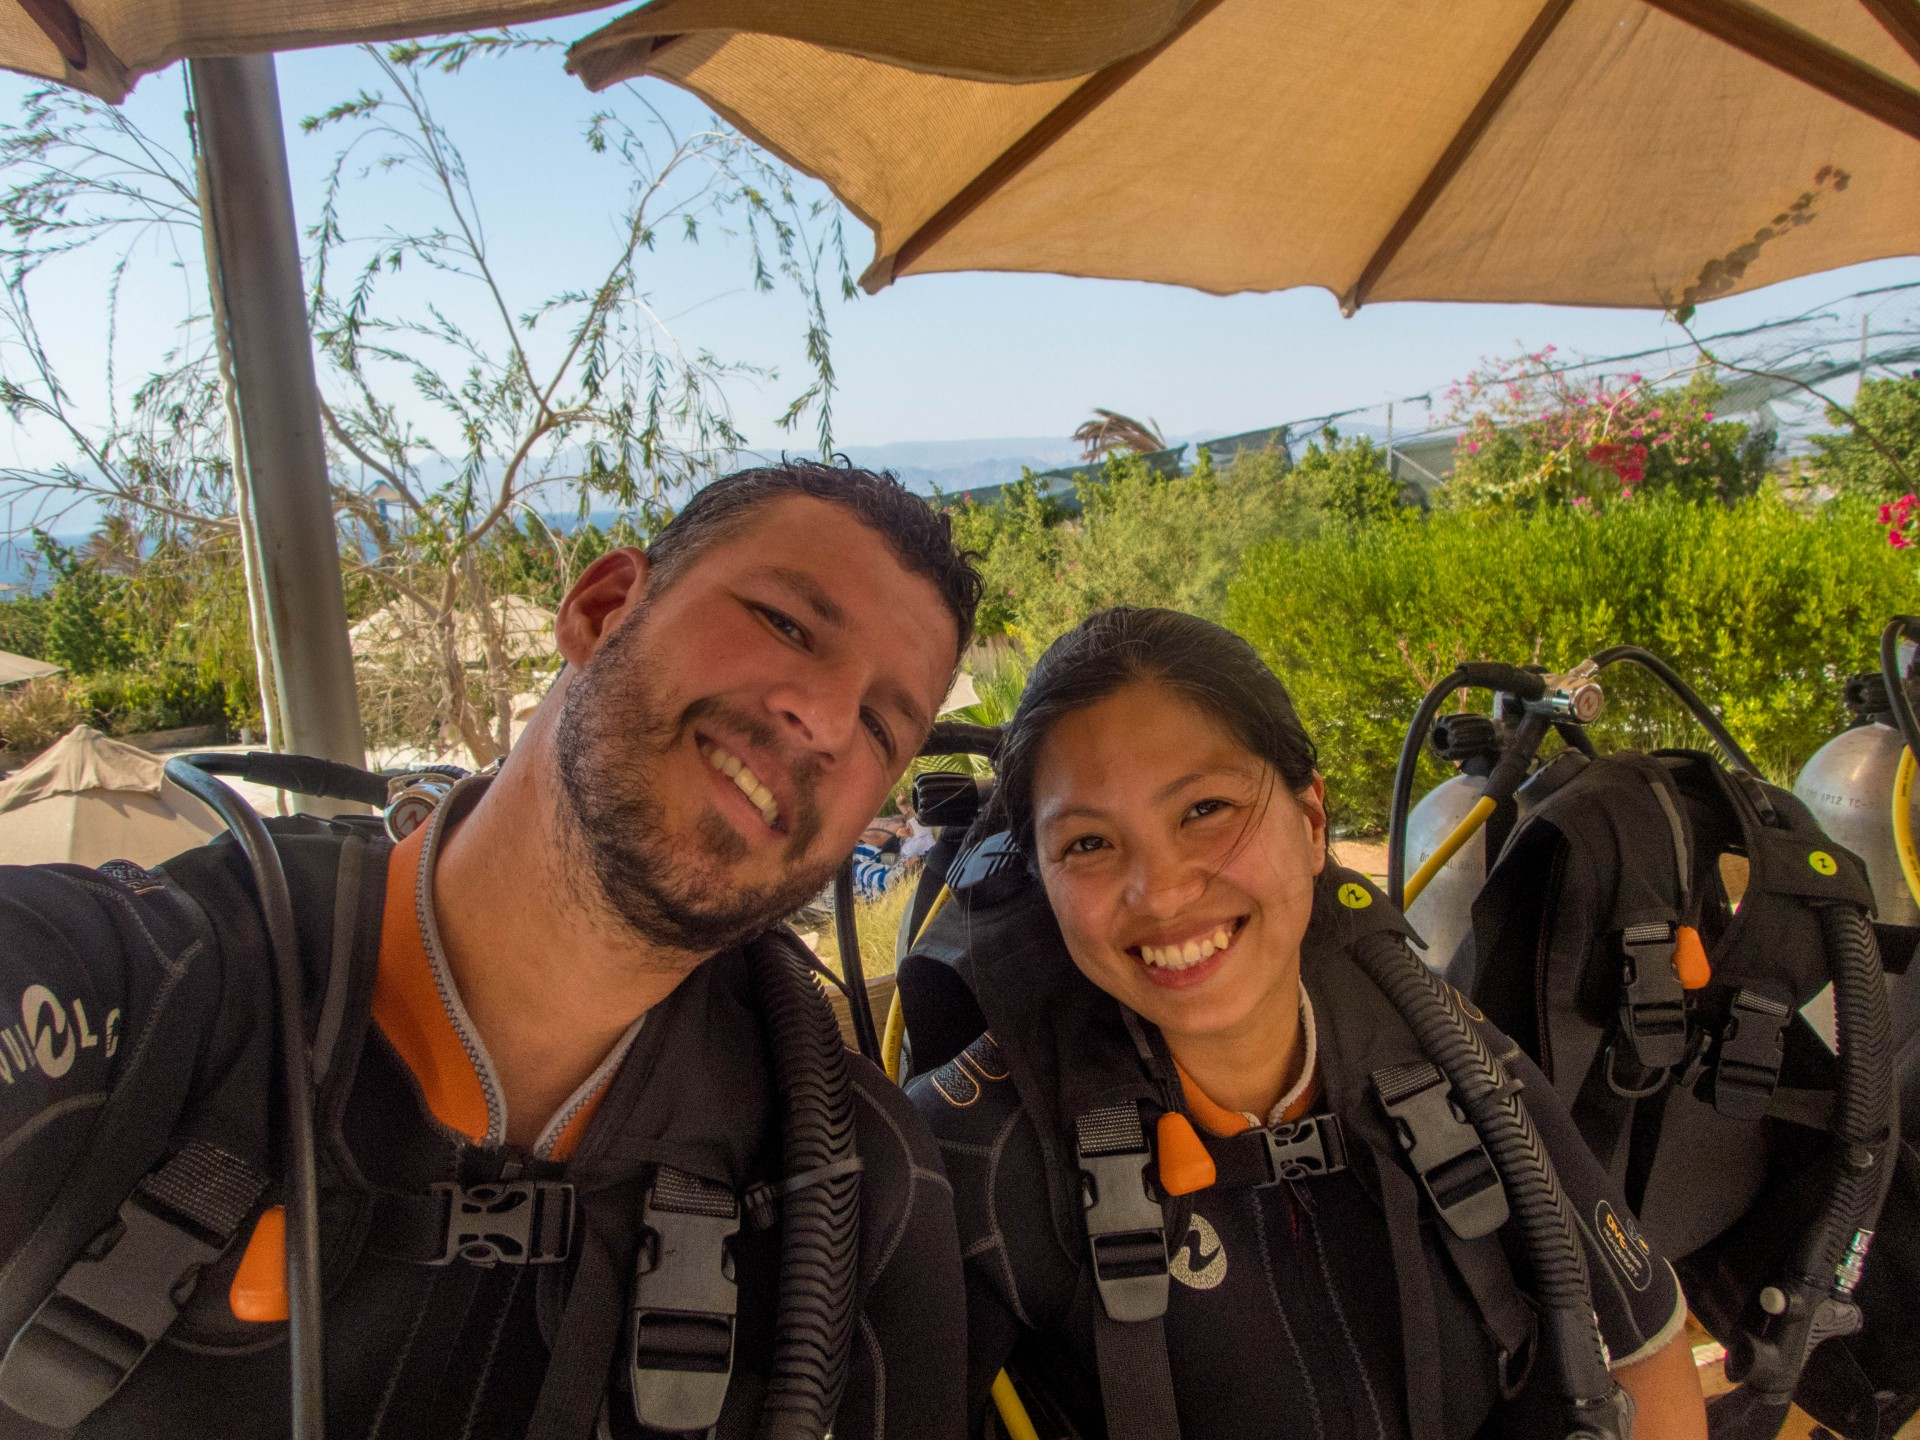 Couple in scuba gear waits to go in the pool to practice their dive skills before going to the Red Sea.